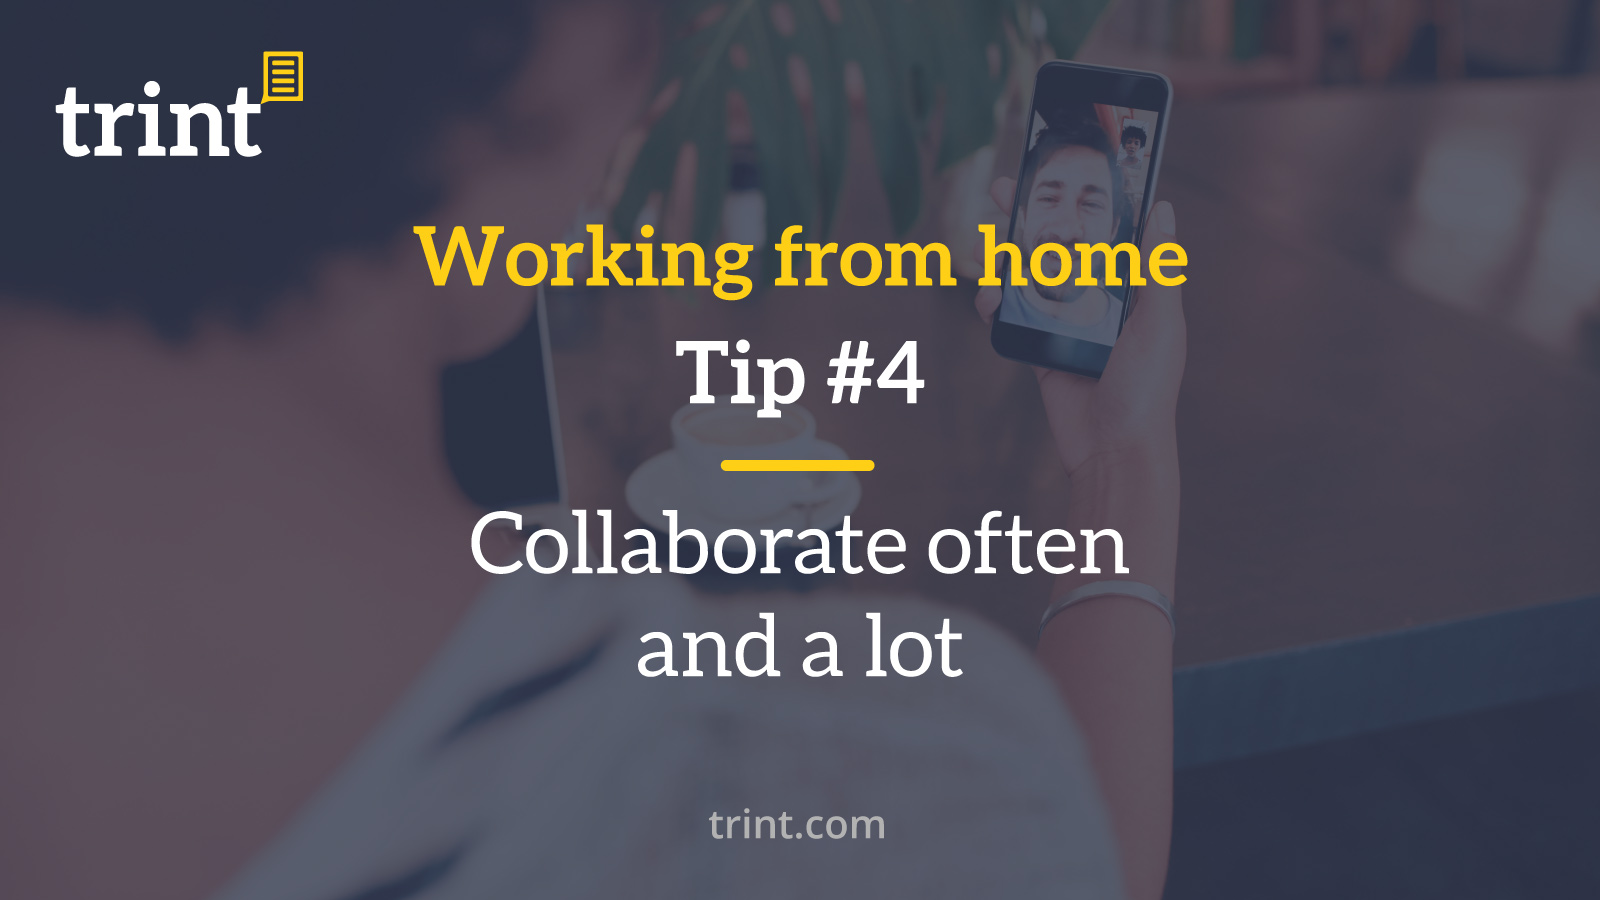 Trint WFH Tip 4 Collaborate often and a lot